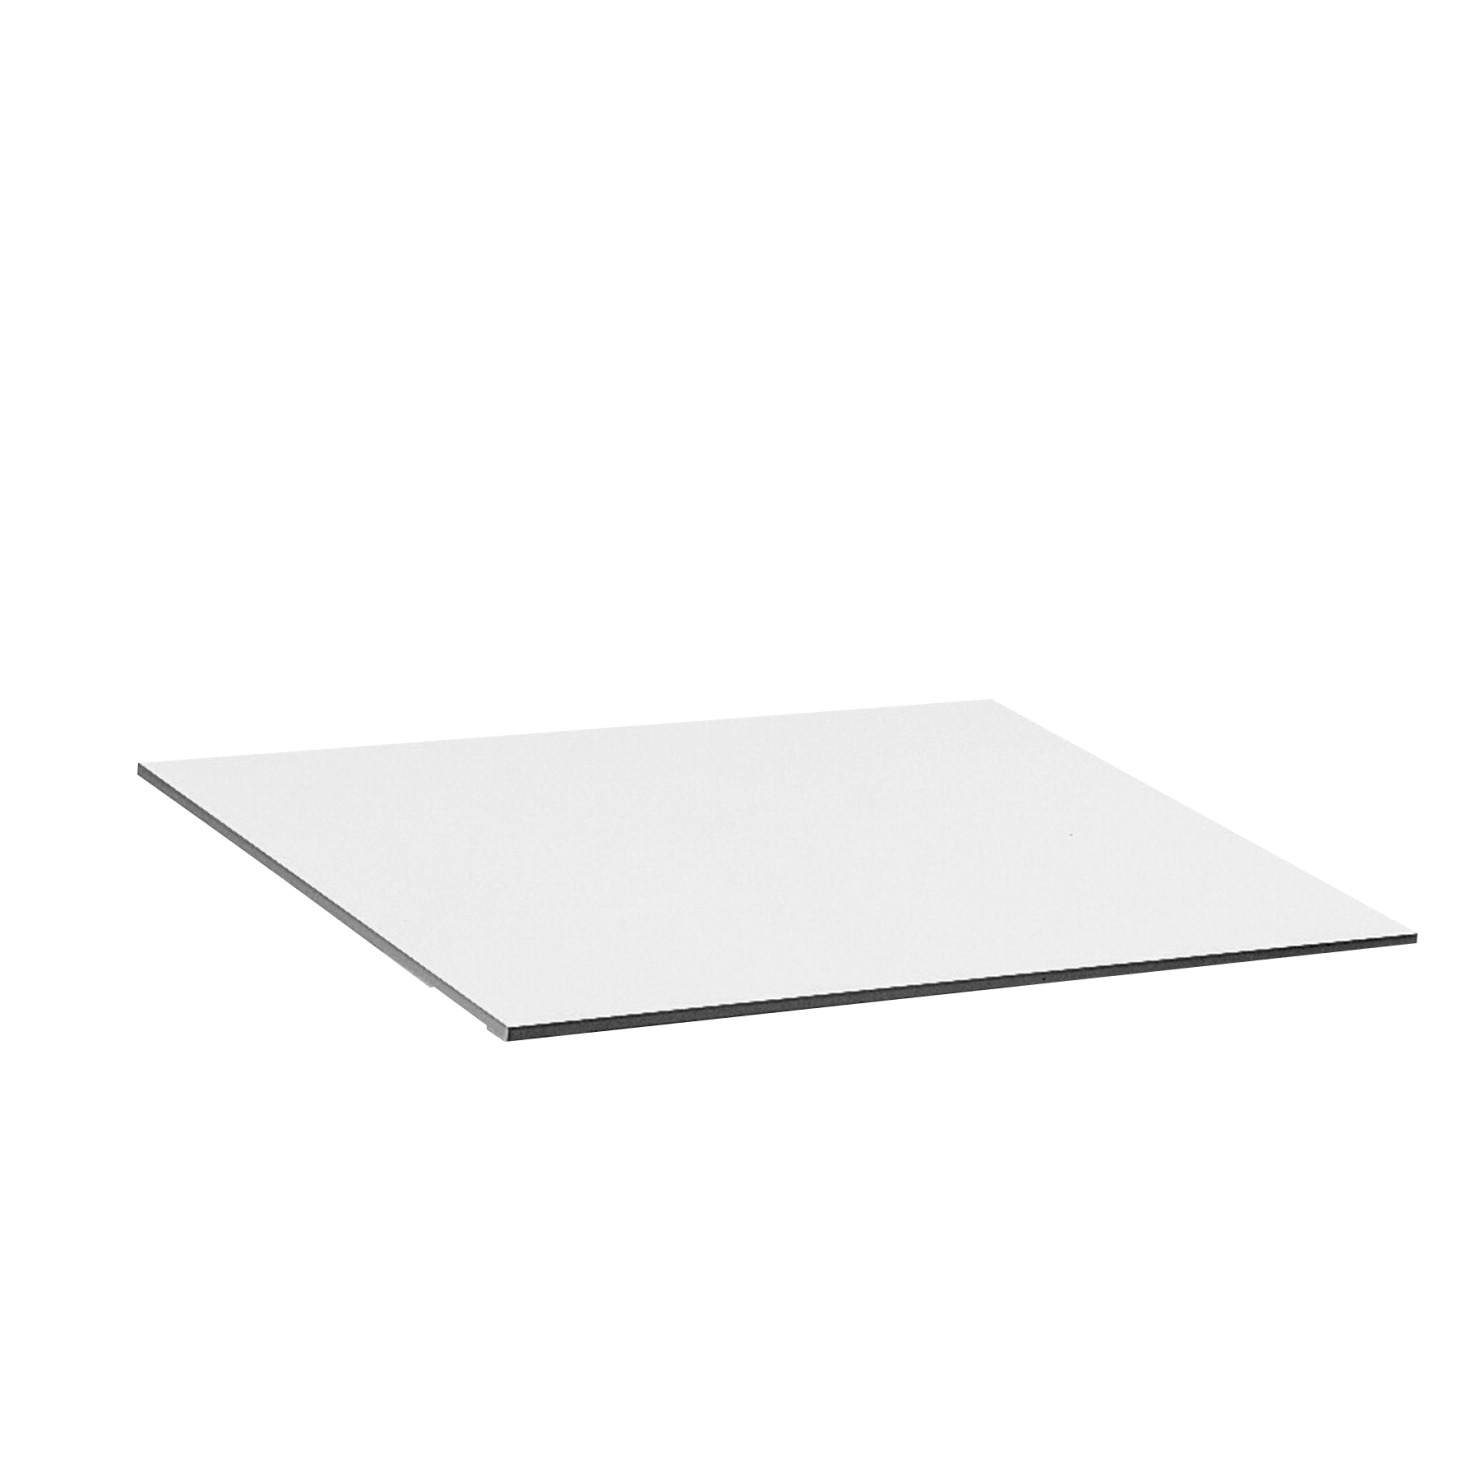 Safco Tabletop, 60 X 37-1/2 in, Melamine, White, for Use with Drafting Table